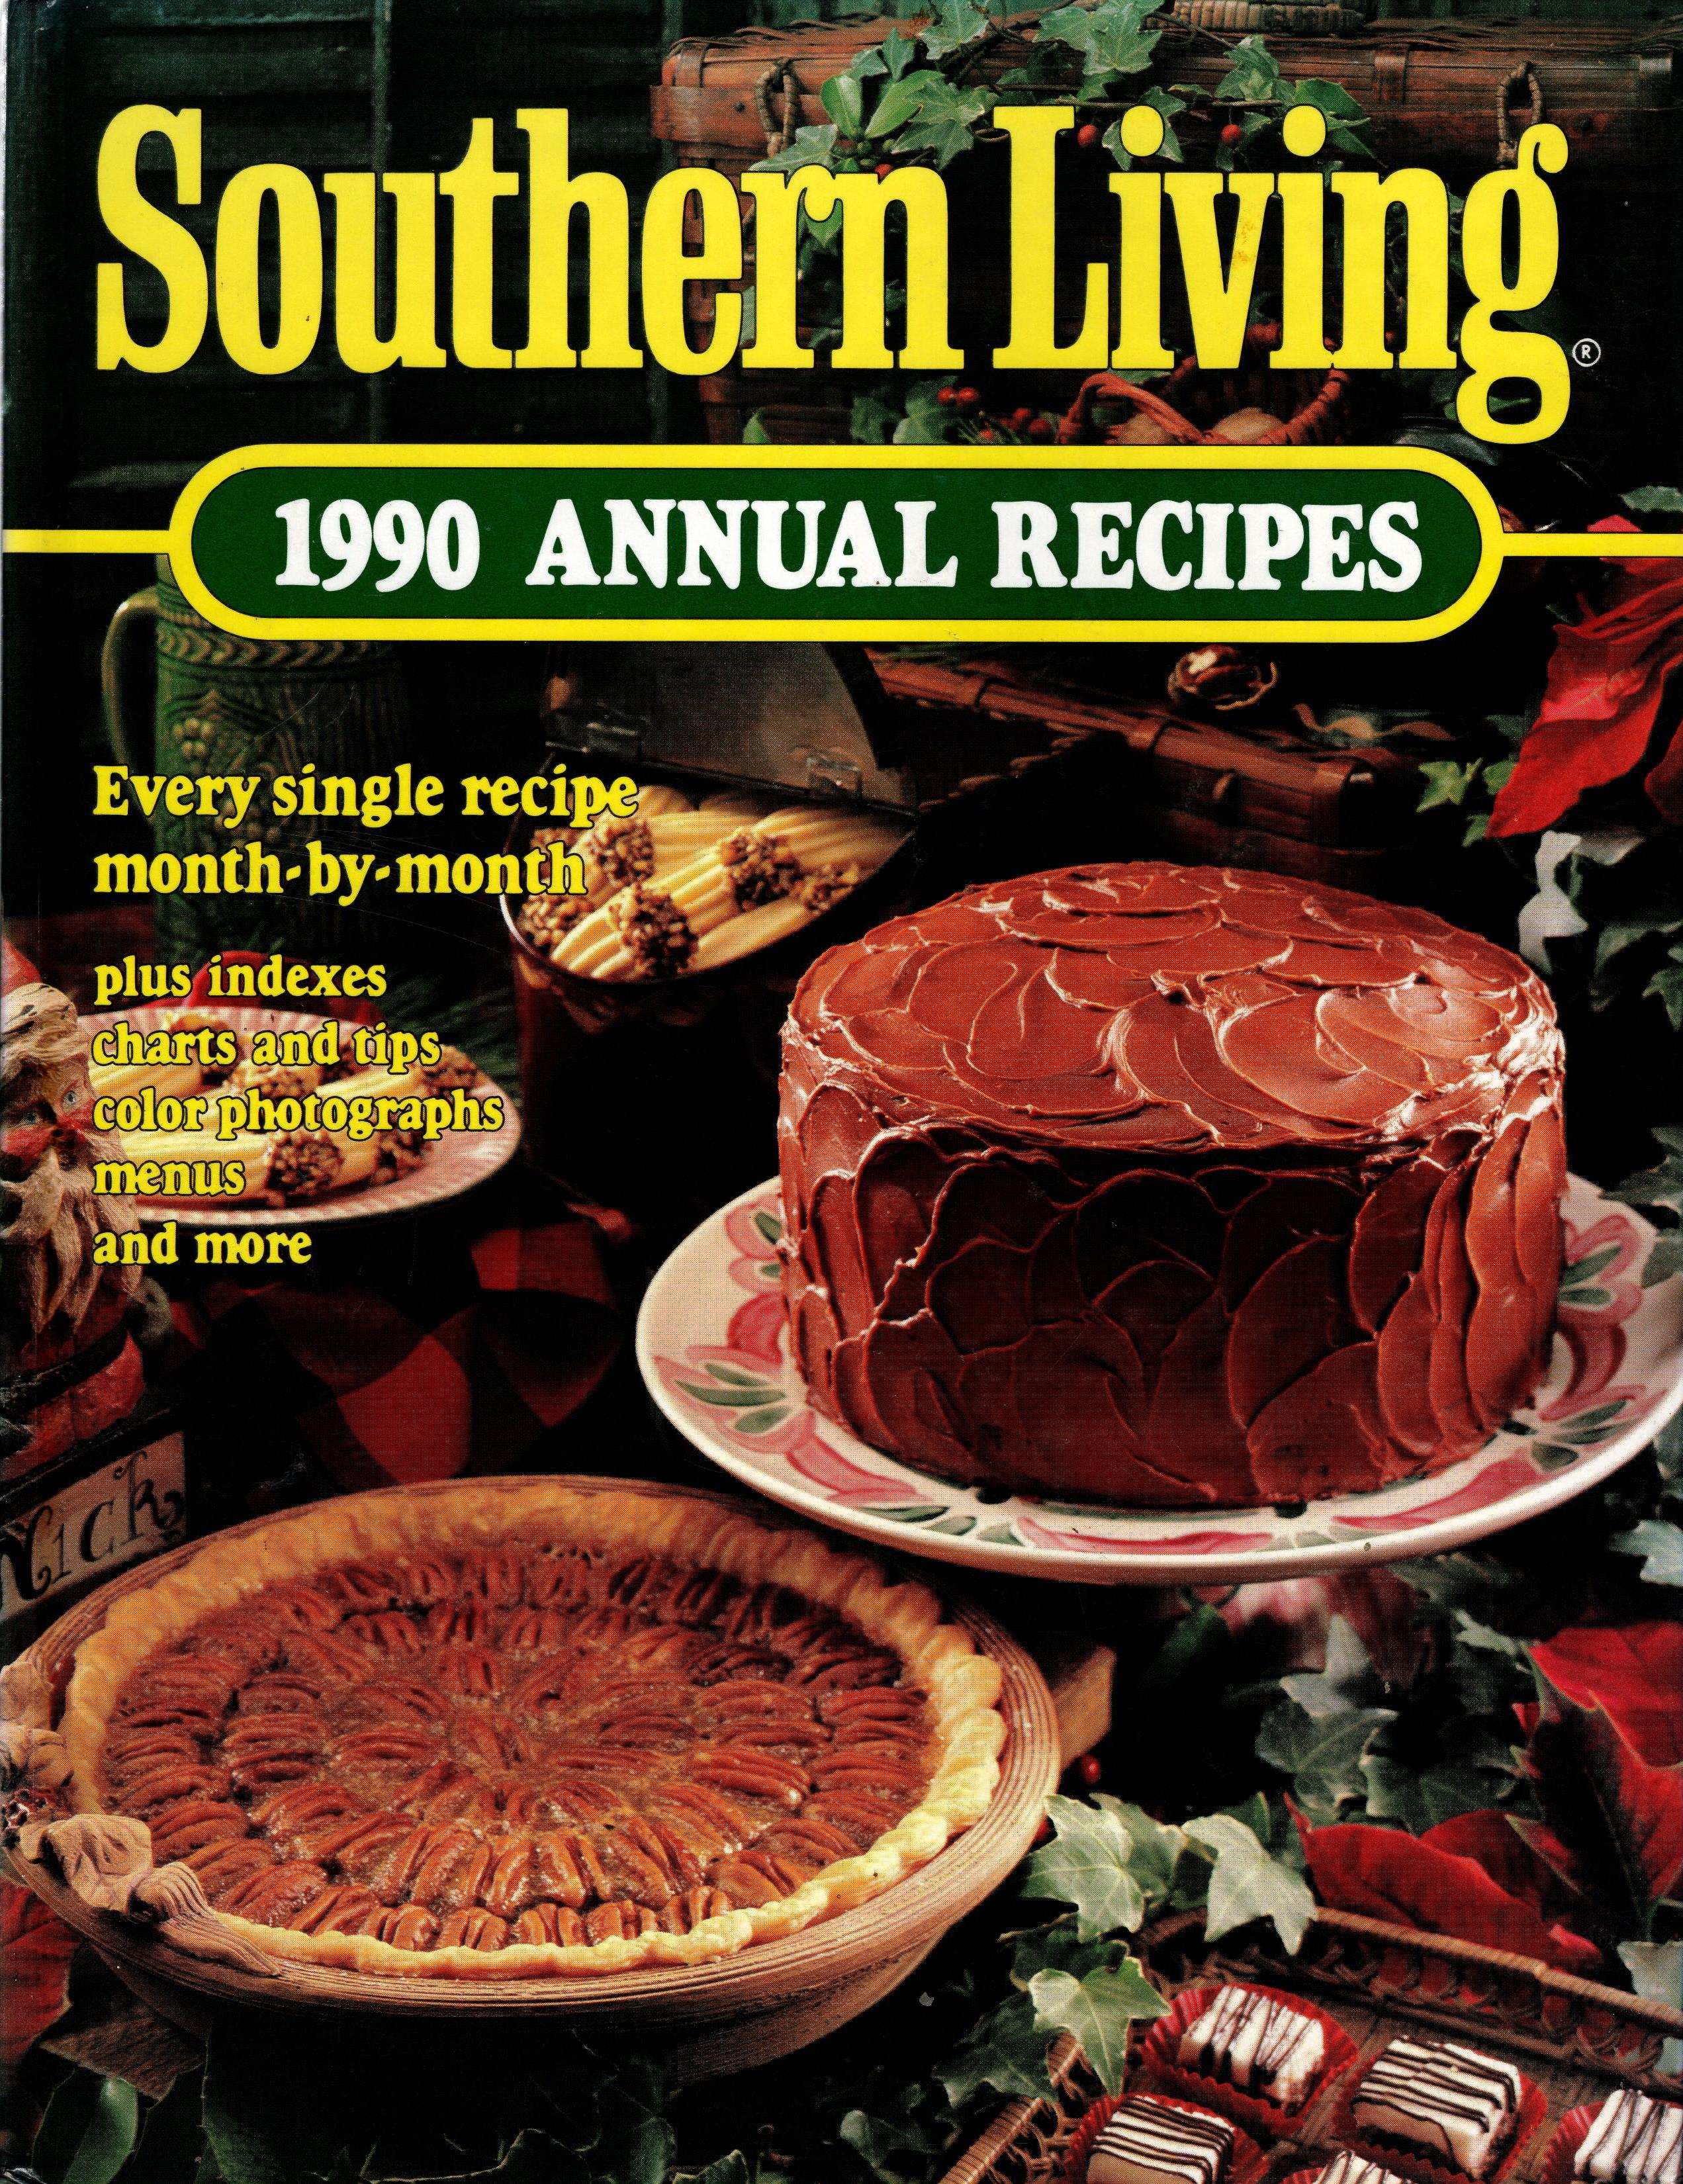 Image for SOUTHERN LIVING ANNUAL RECIPES, 1990